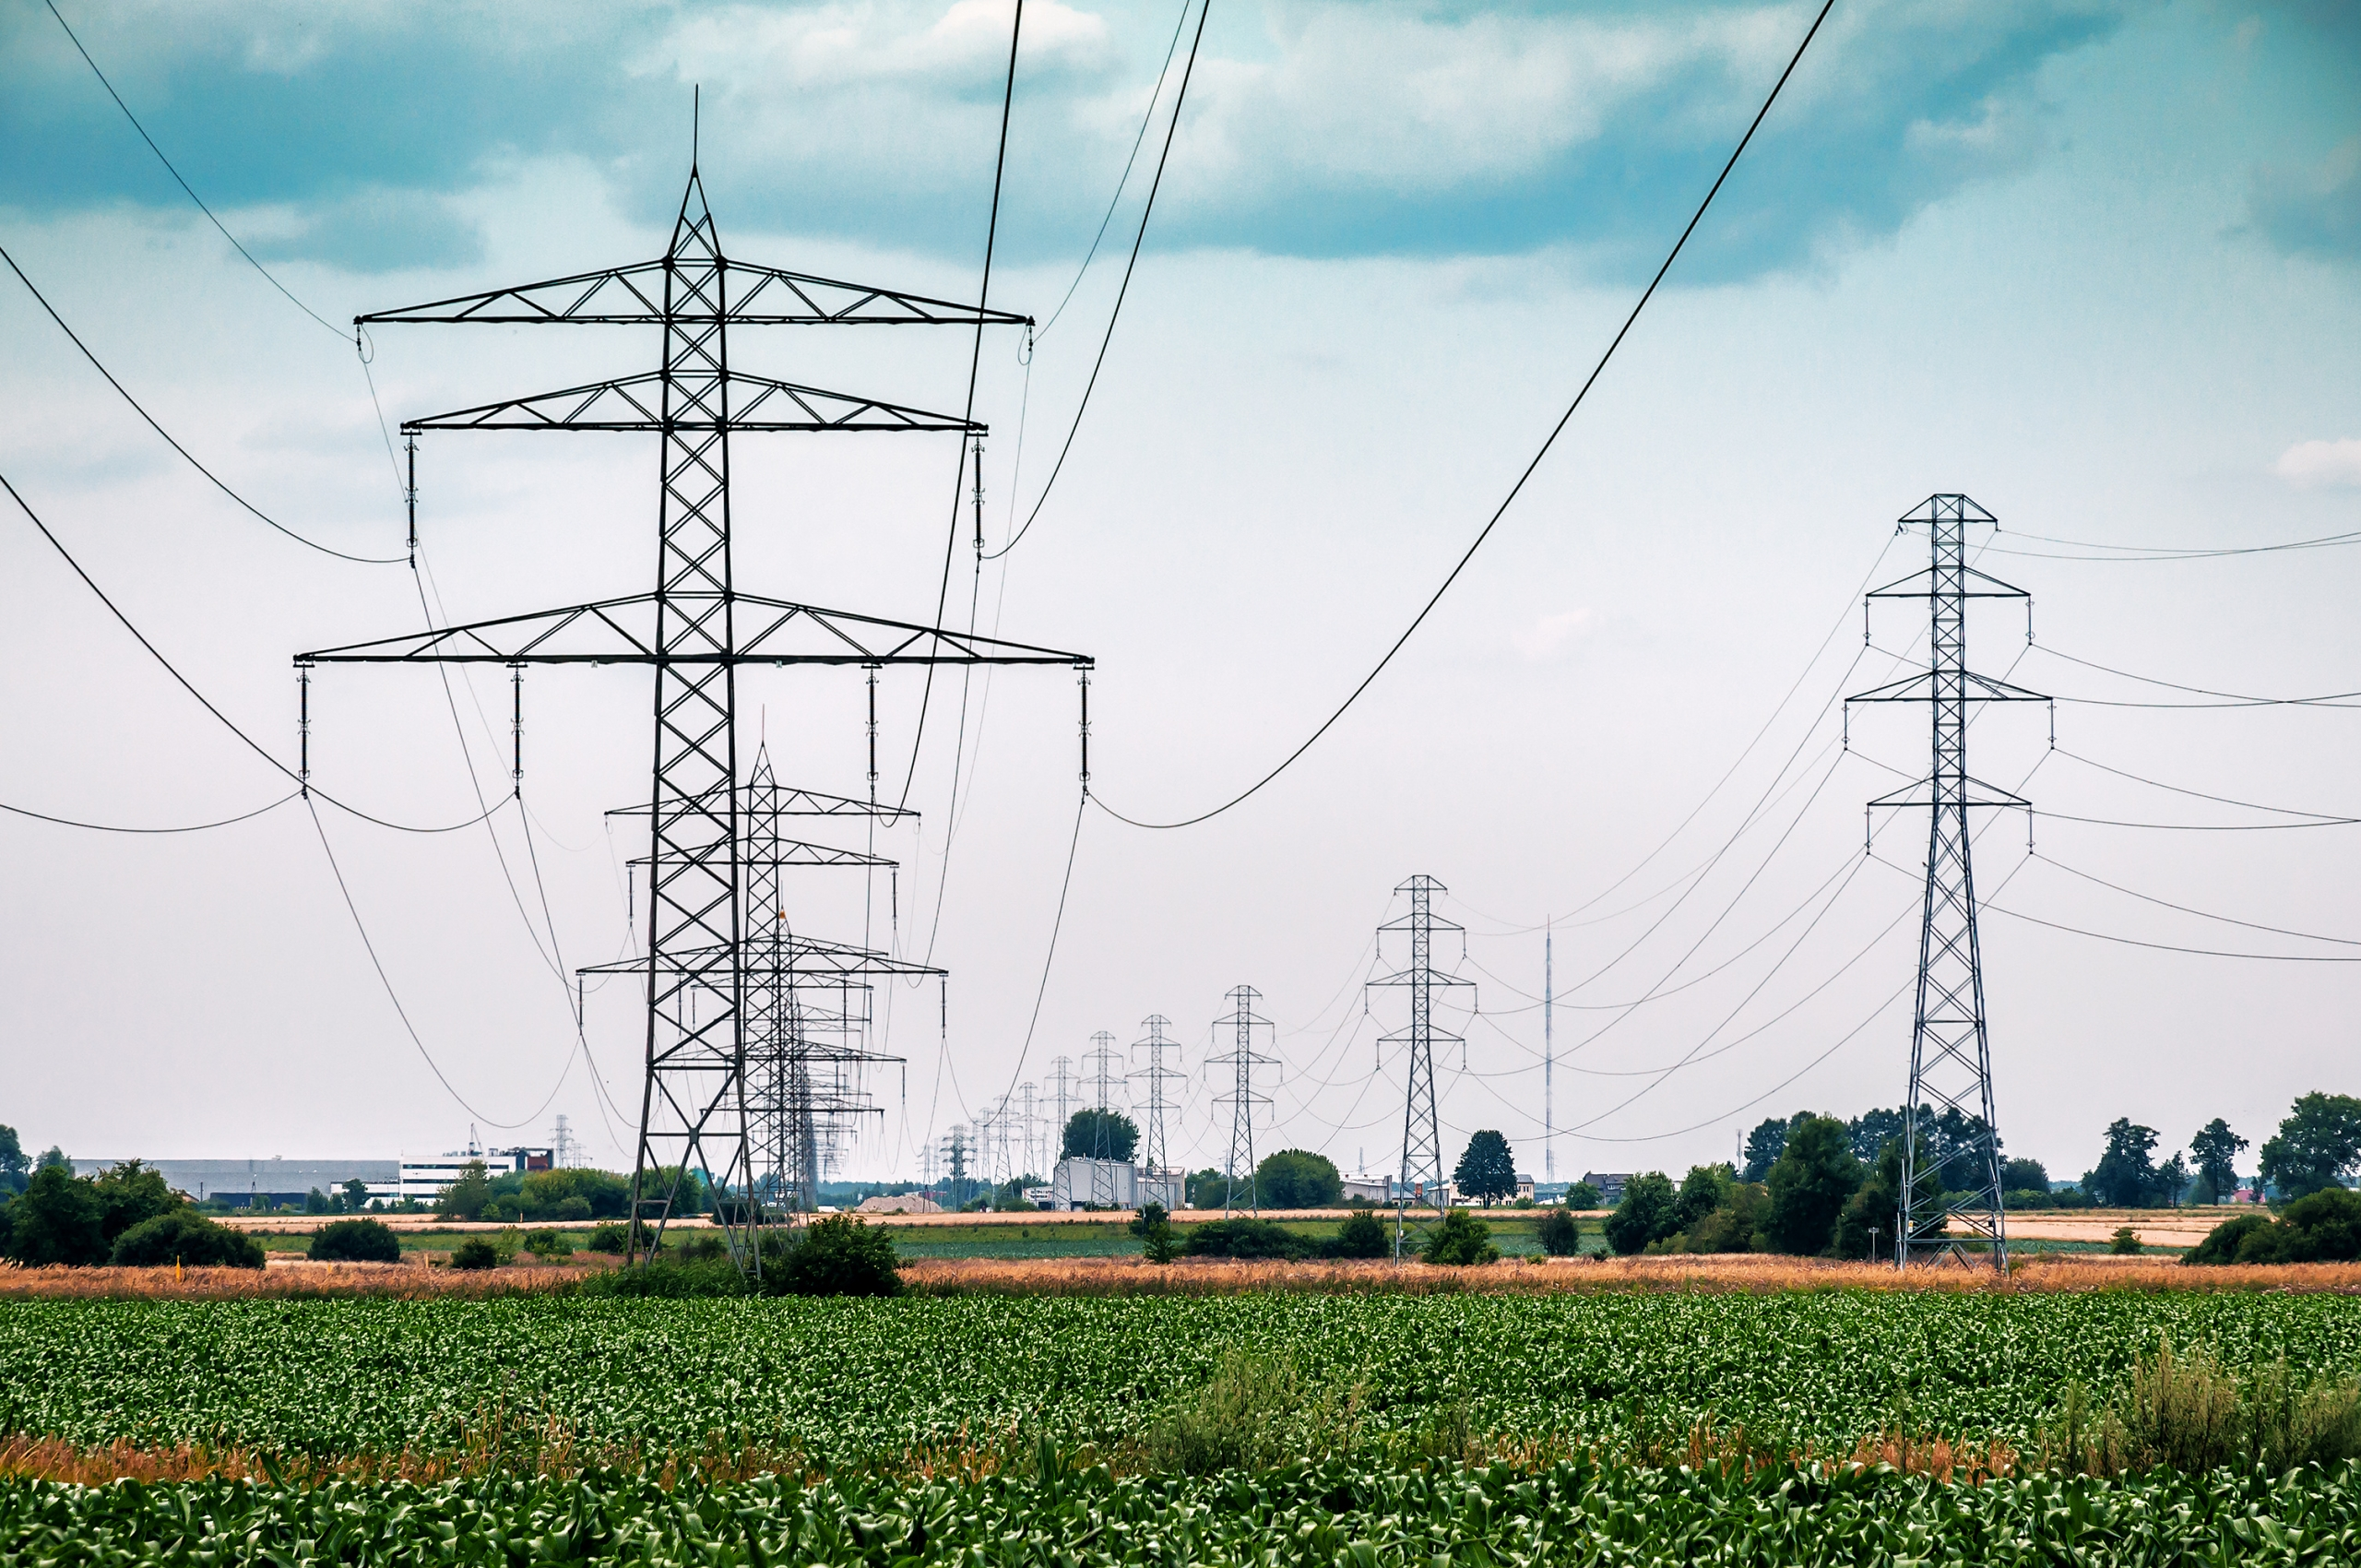 Electrical transmission towers and lines show the air surrounding the lines into which heat energy dissipates.